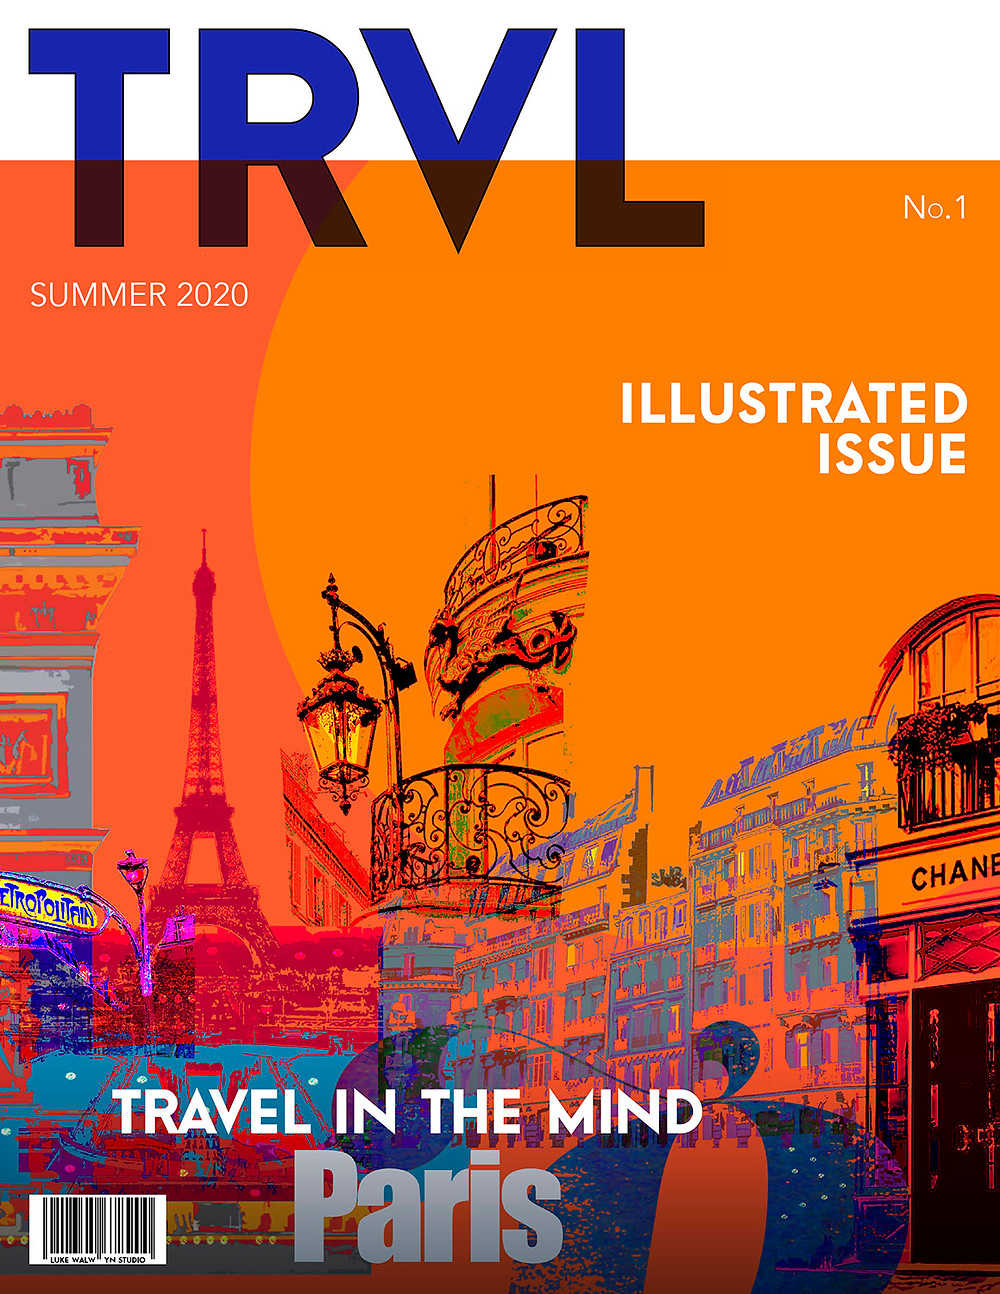 Travel magazine front cover with an abstract illustration of Paris in the evening.